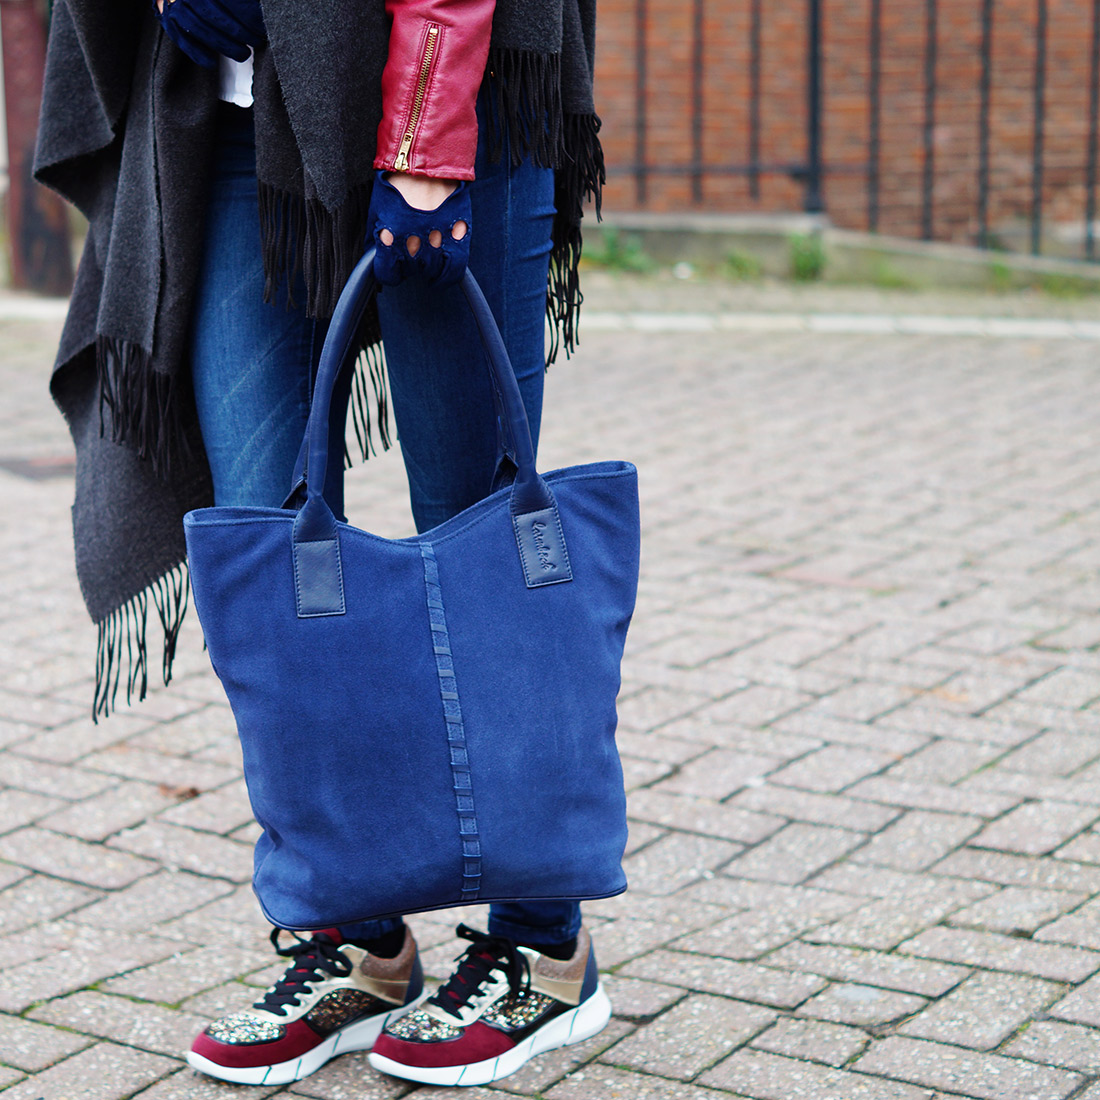 Bag-at-You---Fashion-blog---Glitter-shoes---Laimbock-blue-bag-and-gloves